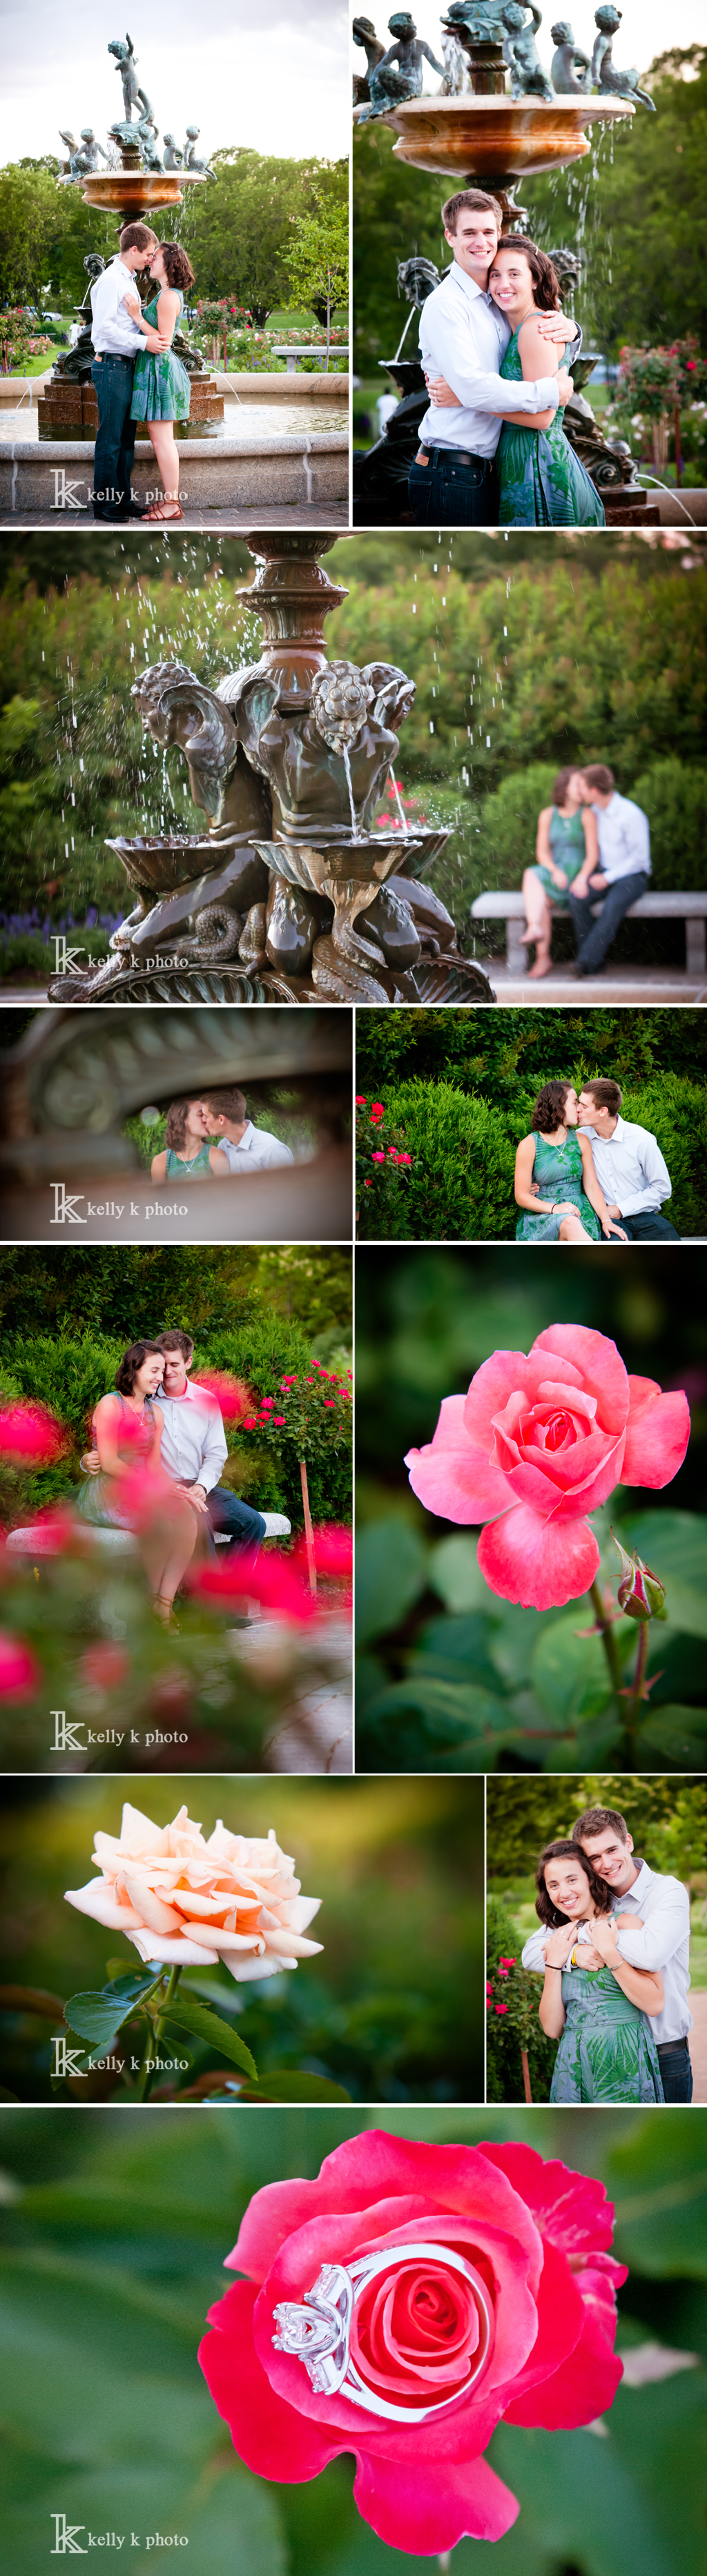 KellyKPhoto_GregMegan_Proposal2